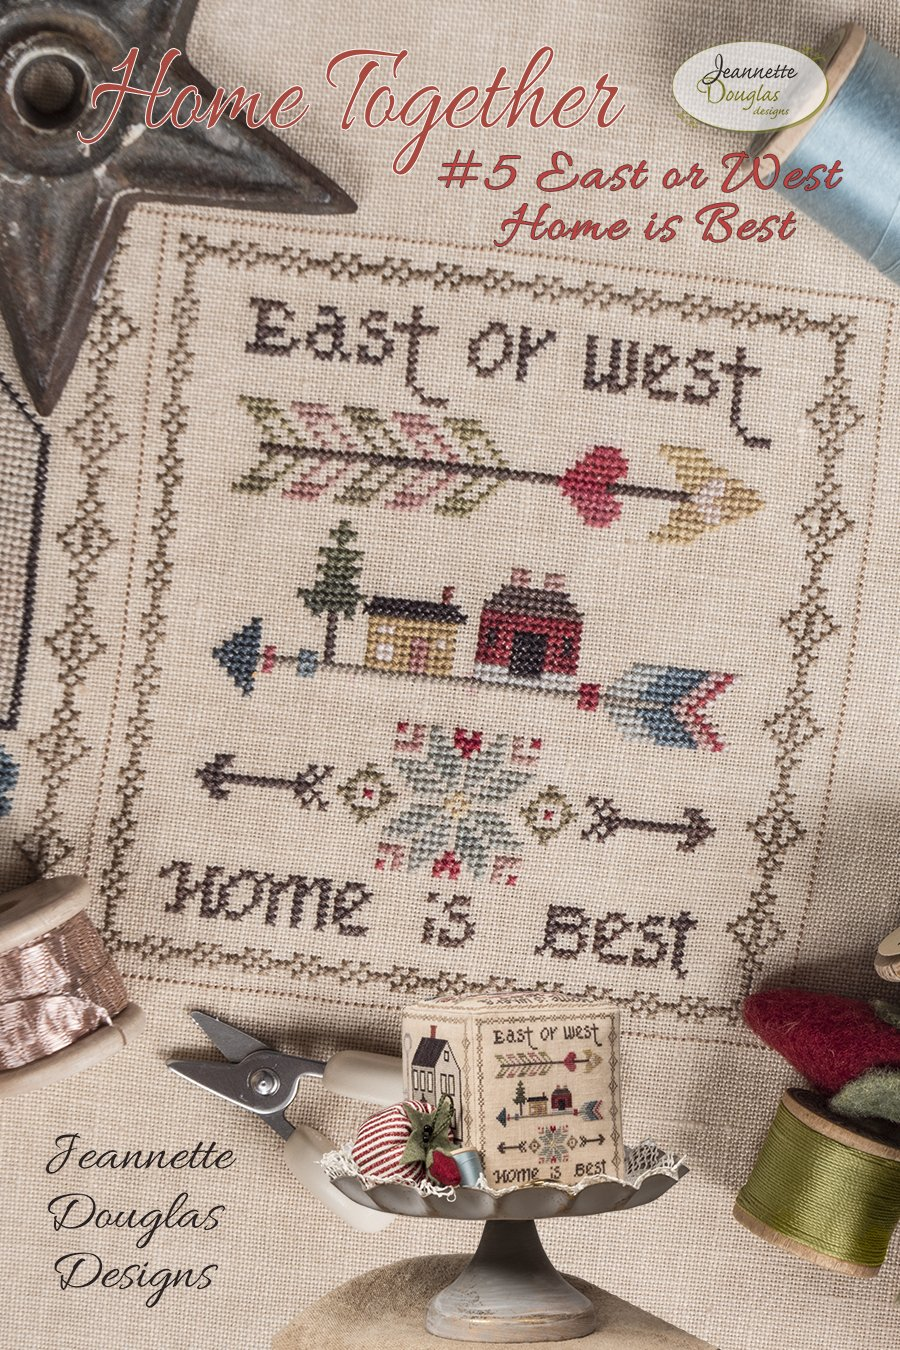 Home Together #5 East or West, Home is Best chart - Jeannette Douglas